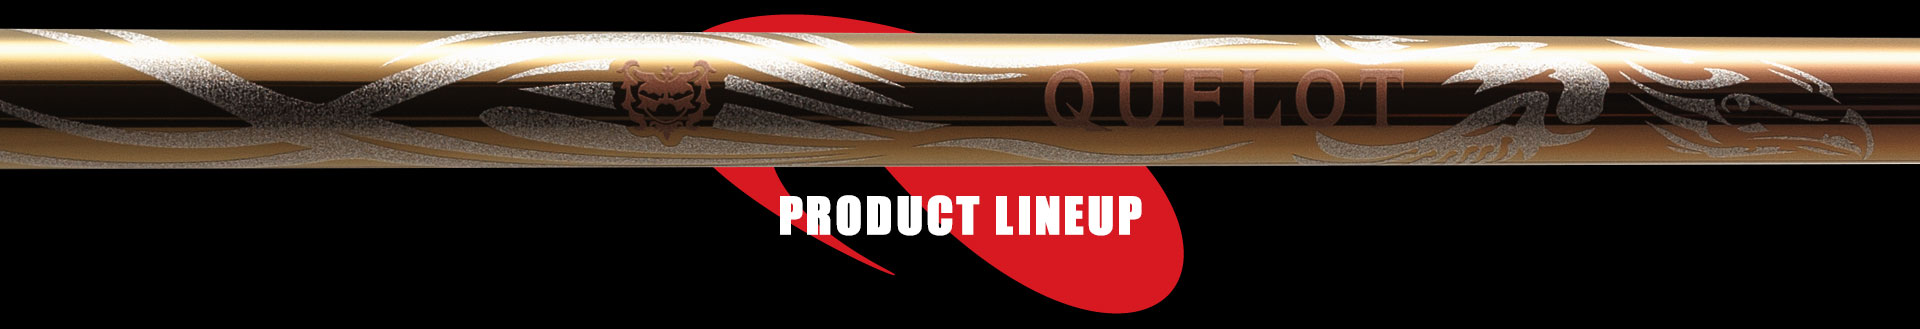 product-lineup